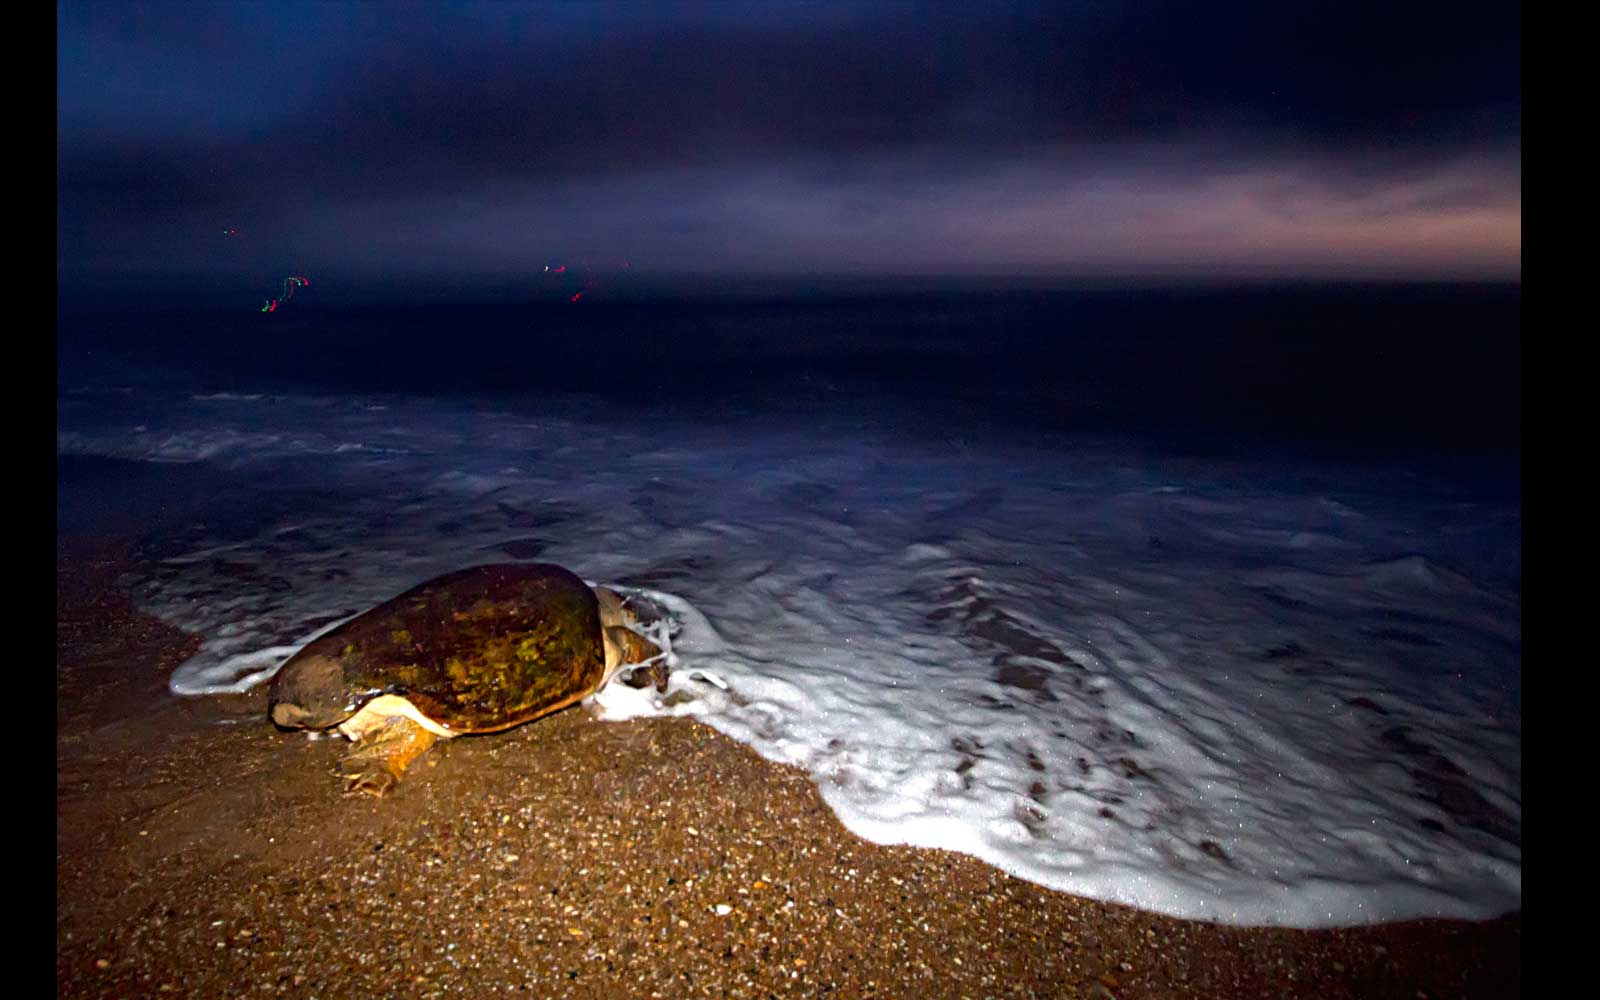 Loggerhead turtle returns to sea after laying eggs, dawn, Mon Repos Beach.